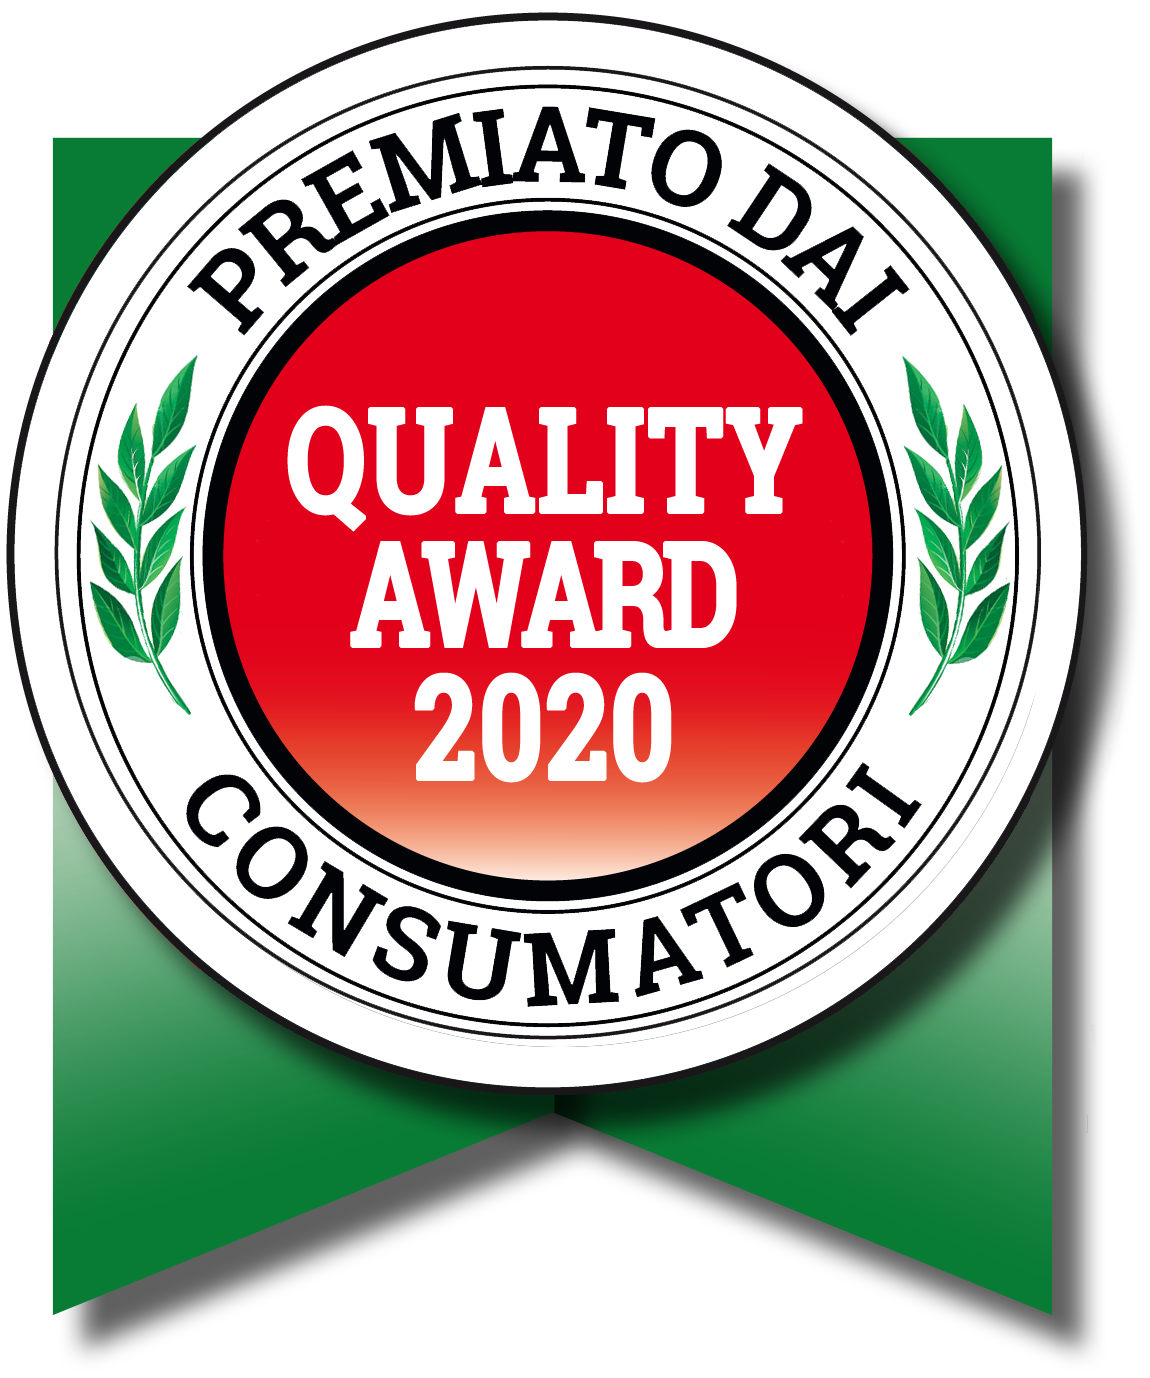 LOGO QUALITY AWARD 2020 2